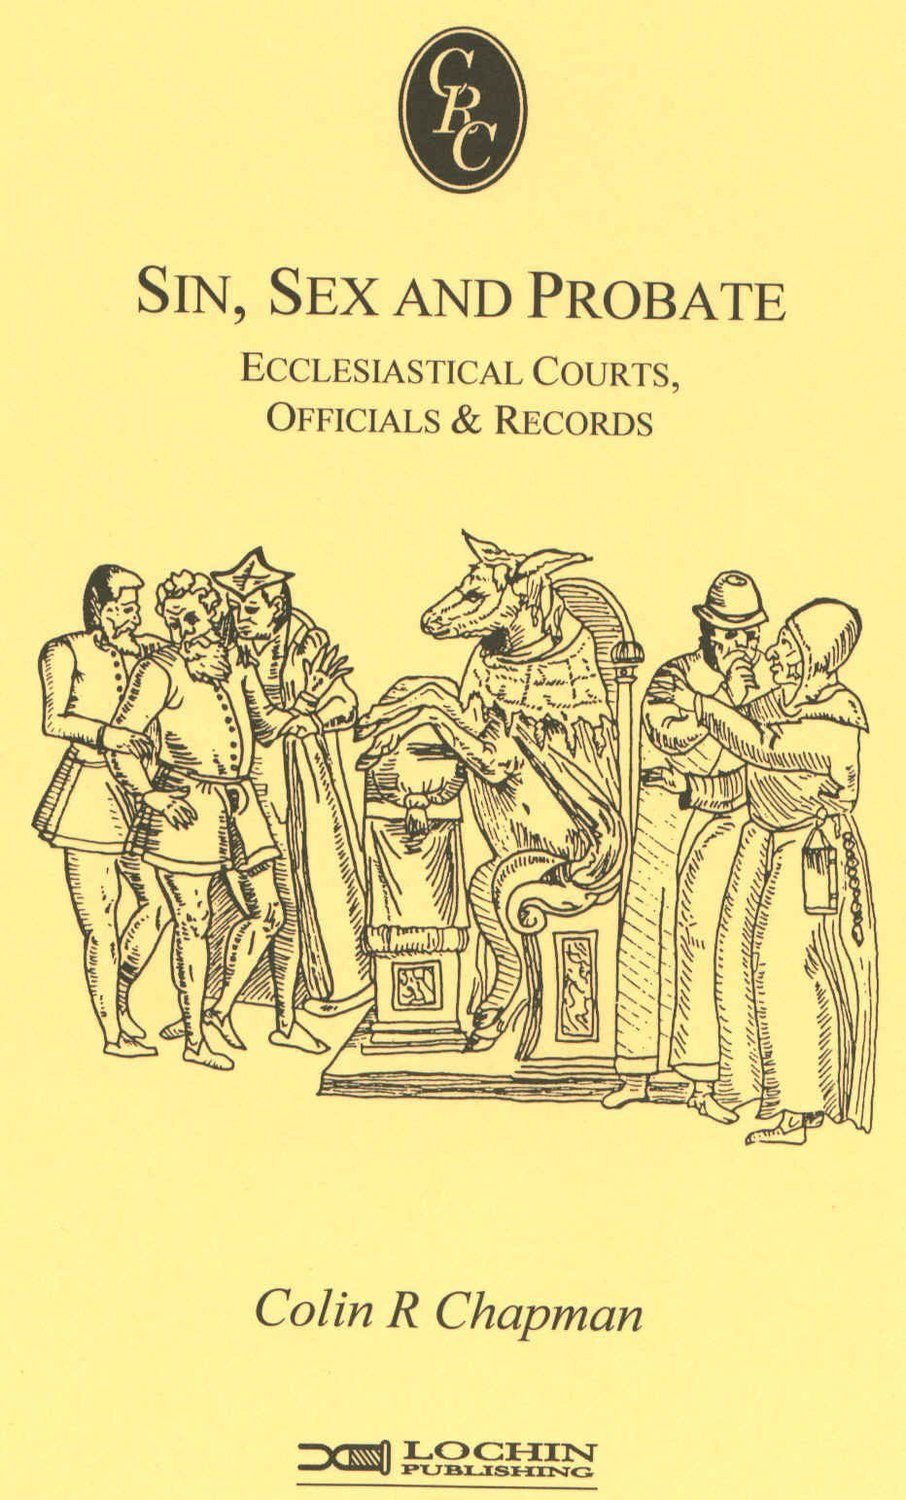 Sin, Sex & Probate: Ecclesiastical Courts, Officials & Records